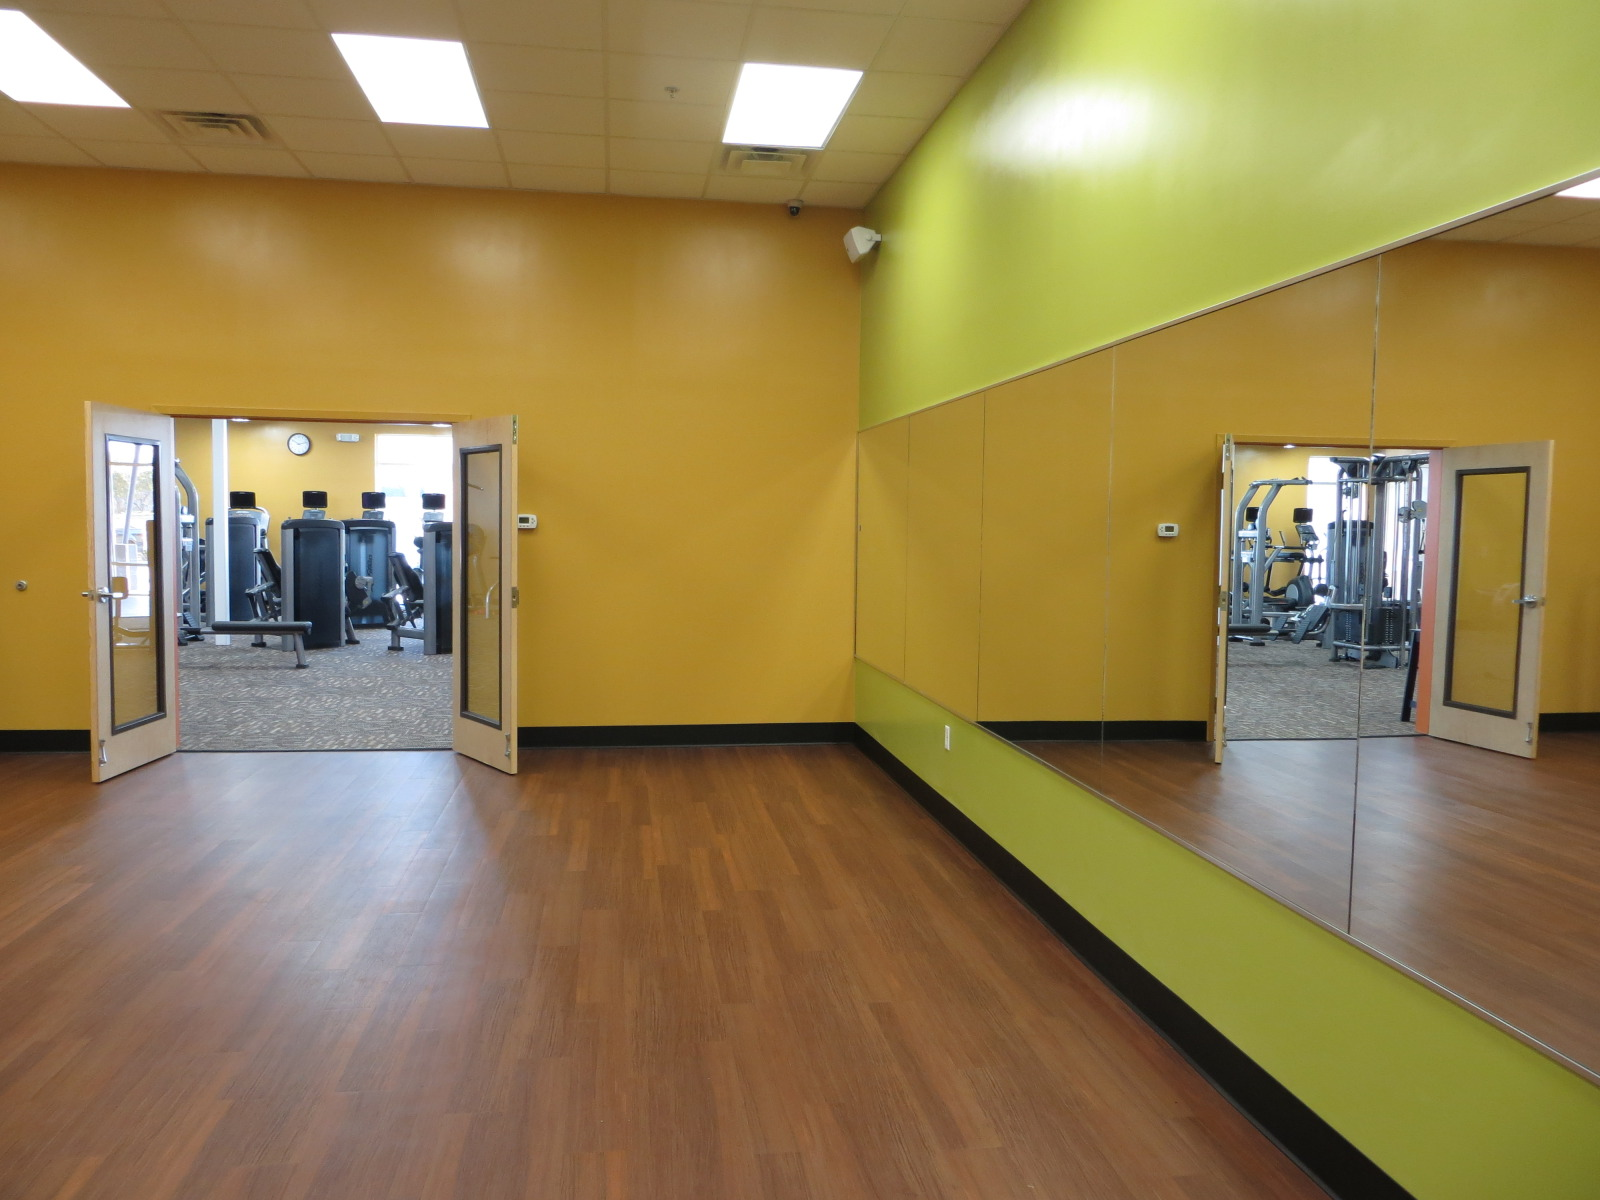 Group fitness room build paragon